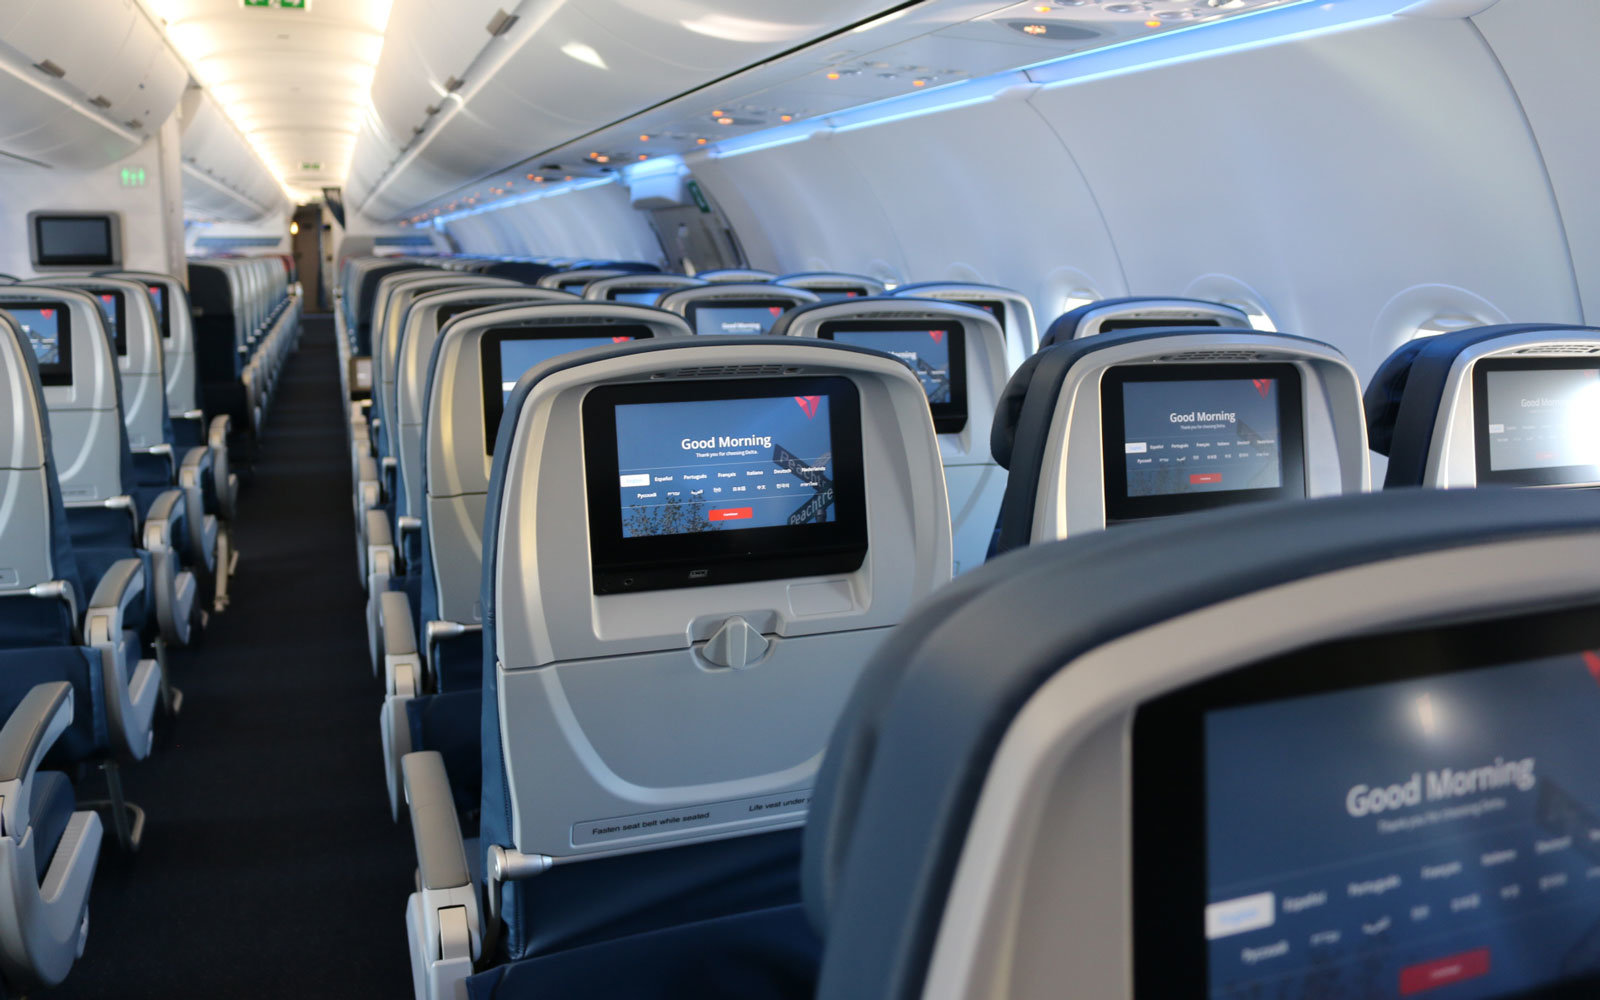 The Movies And Tv Shows Coming To In Flight Entertainment